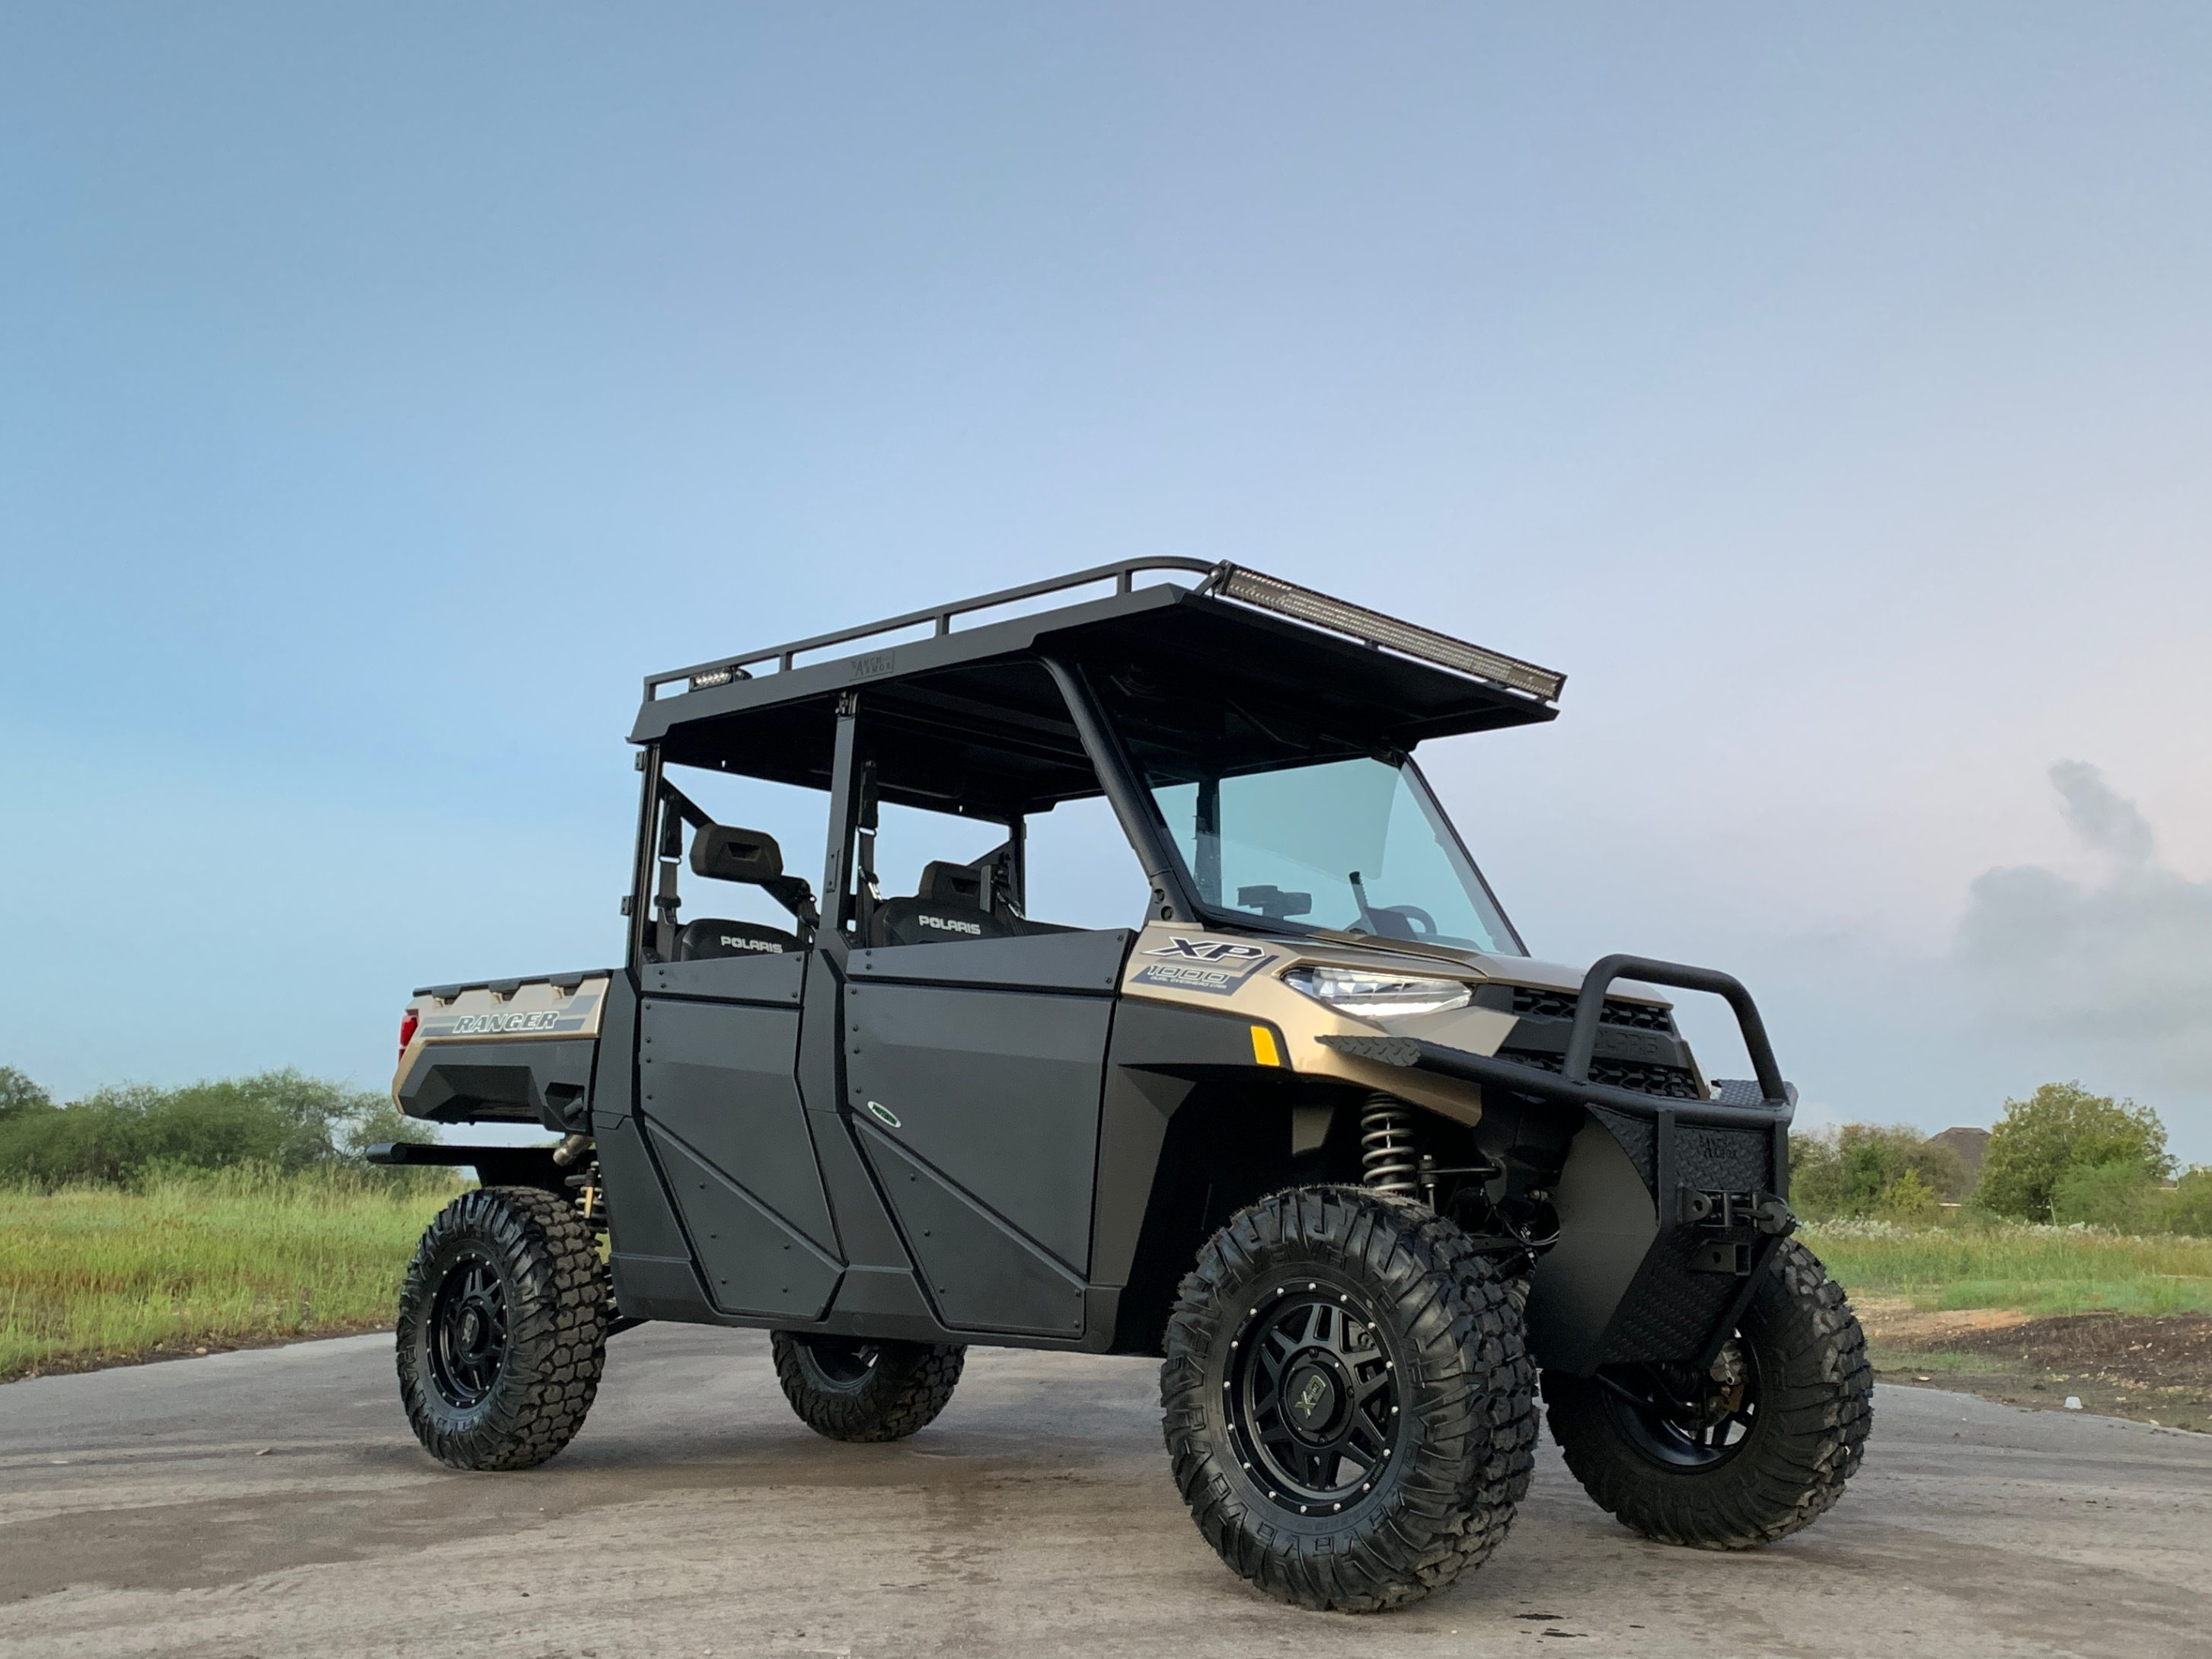 polaris-ranger-1000-crew-metal-roof-with-upper-rack-on-2020-by-ranch-armor.jpg